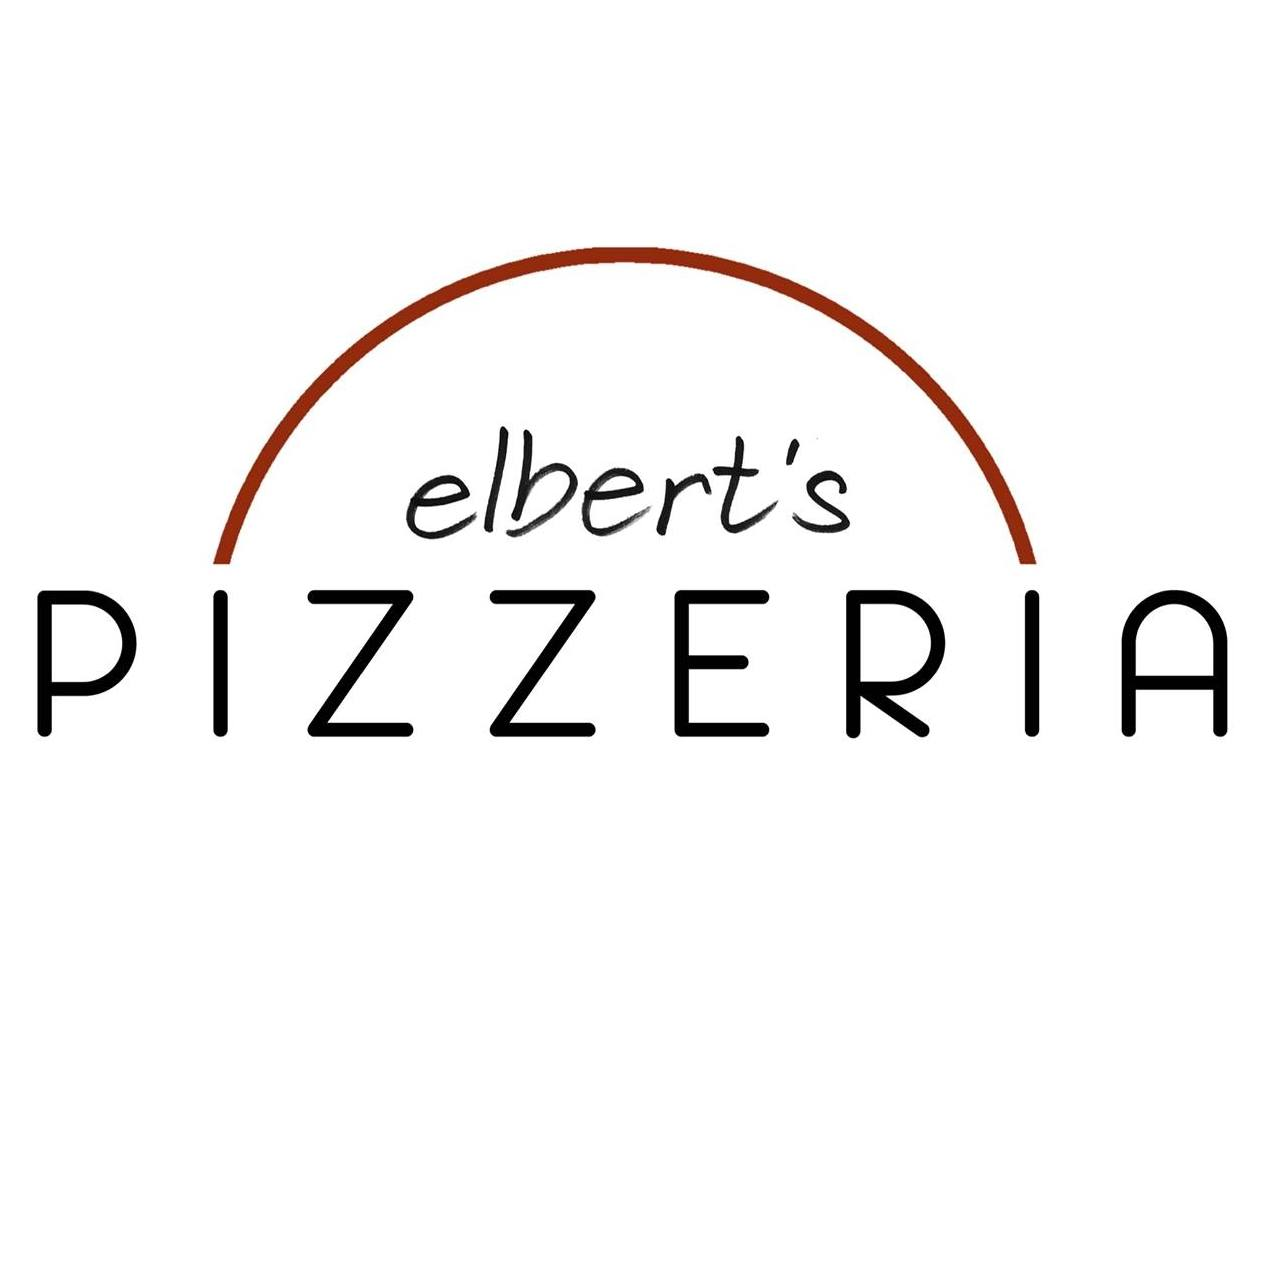 Elbert's Pizzeria